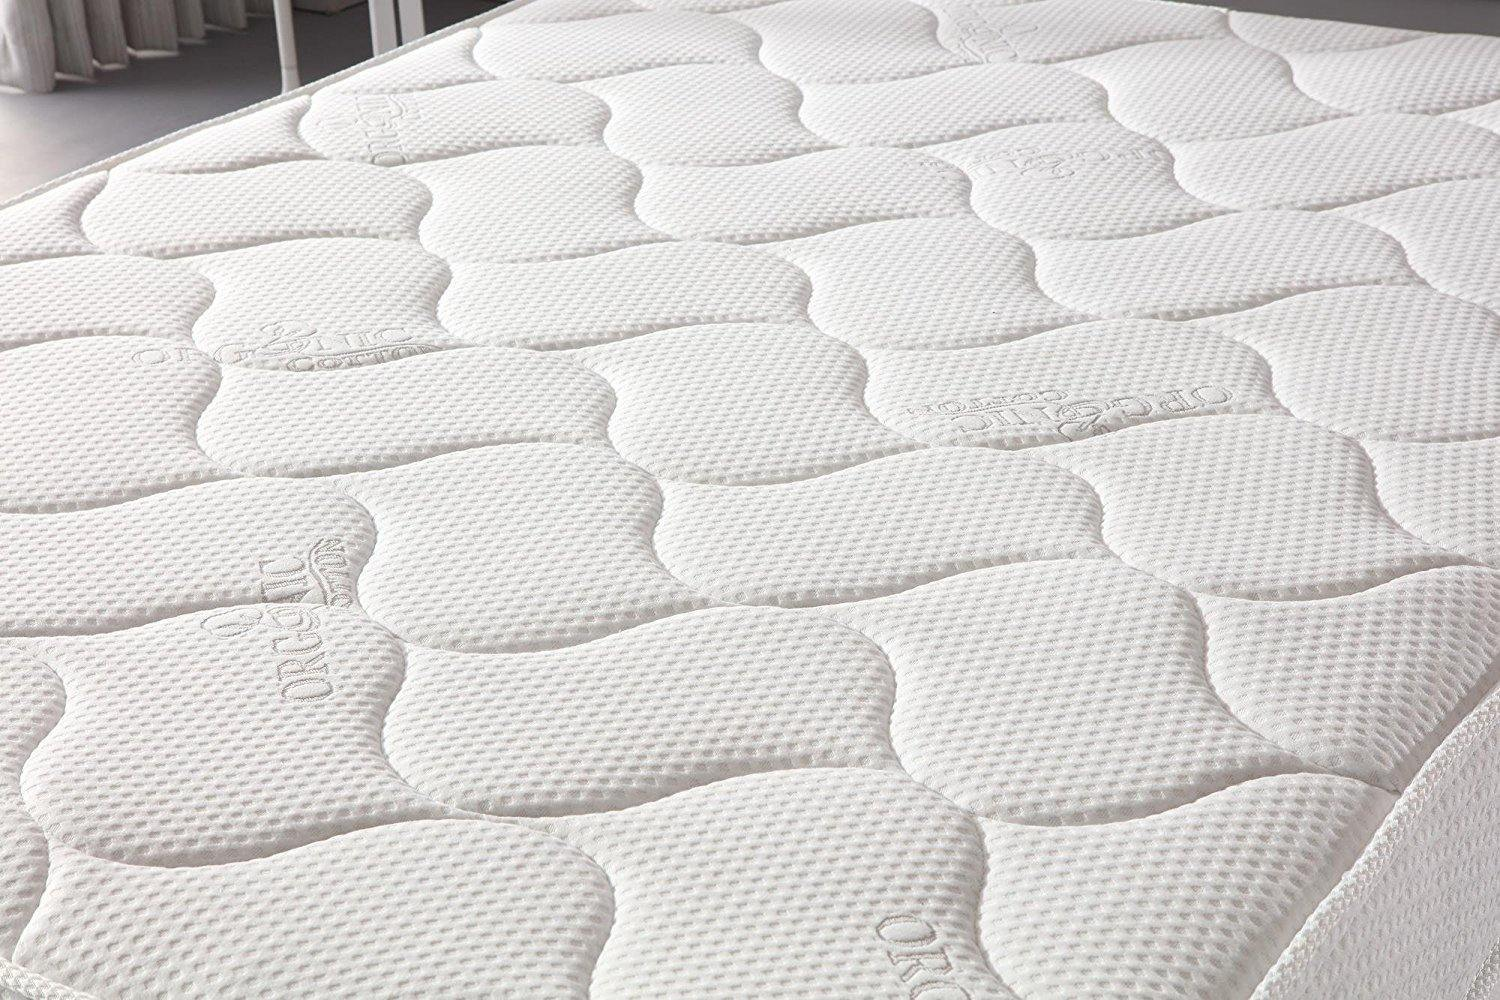 "Oliver Smith® Organic Cotton 10"" Firm Comfort Sleep Spring & Foam Hybrid Mattress"